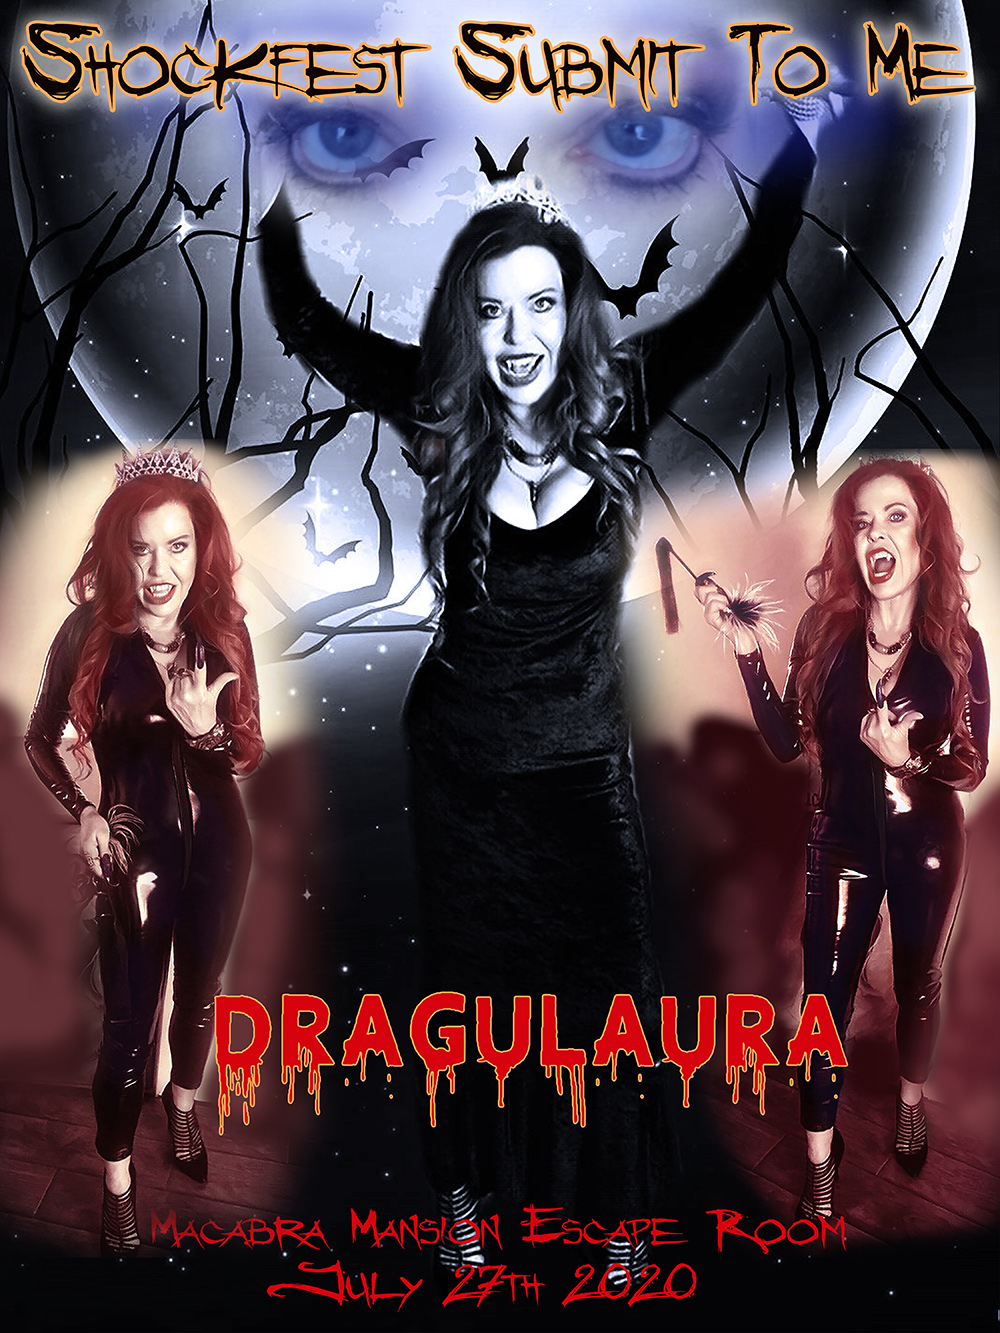 Shockfest Submit to Me with Dragulaura Queen of the Vampires